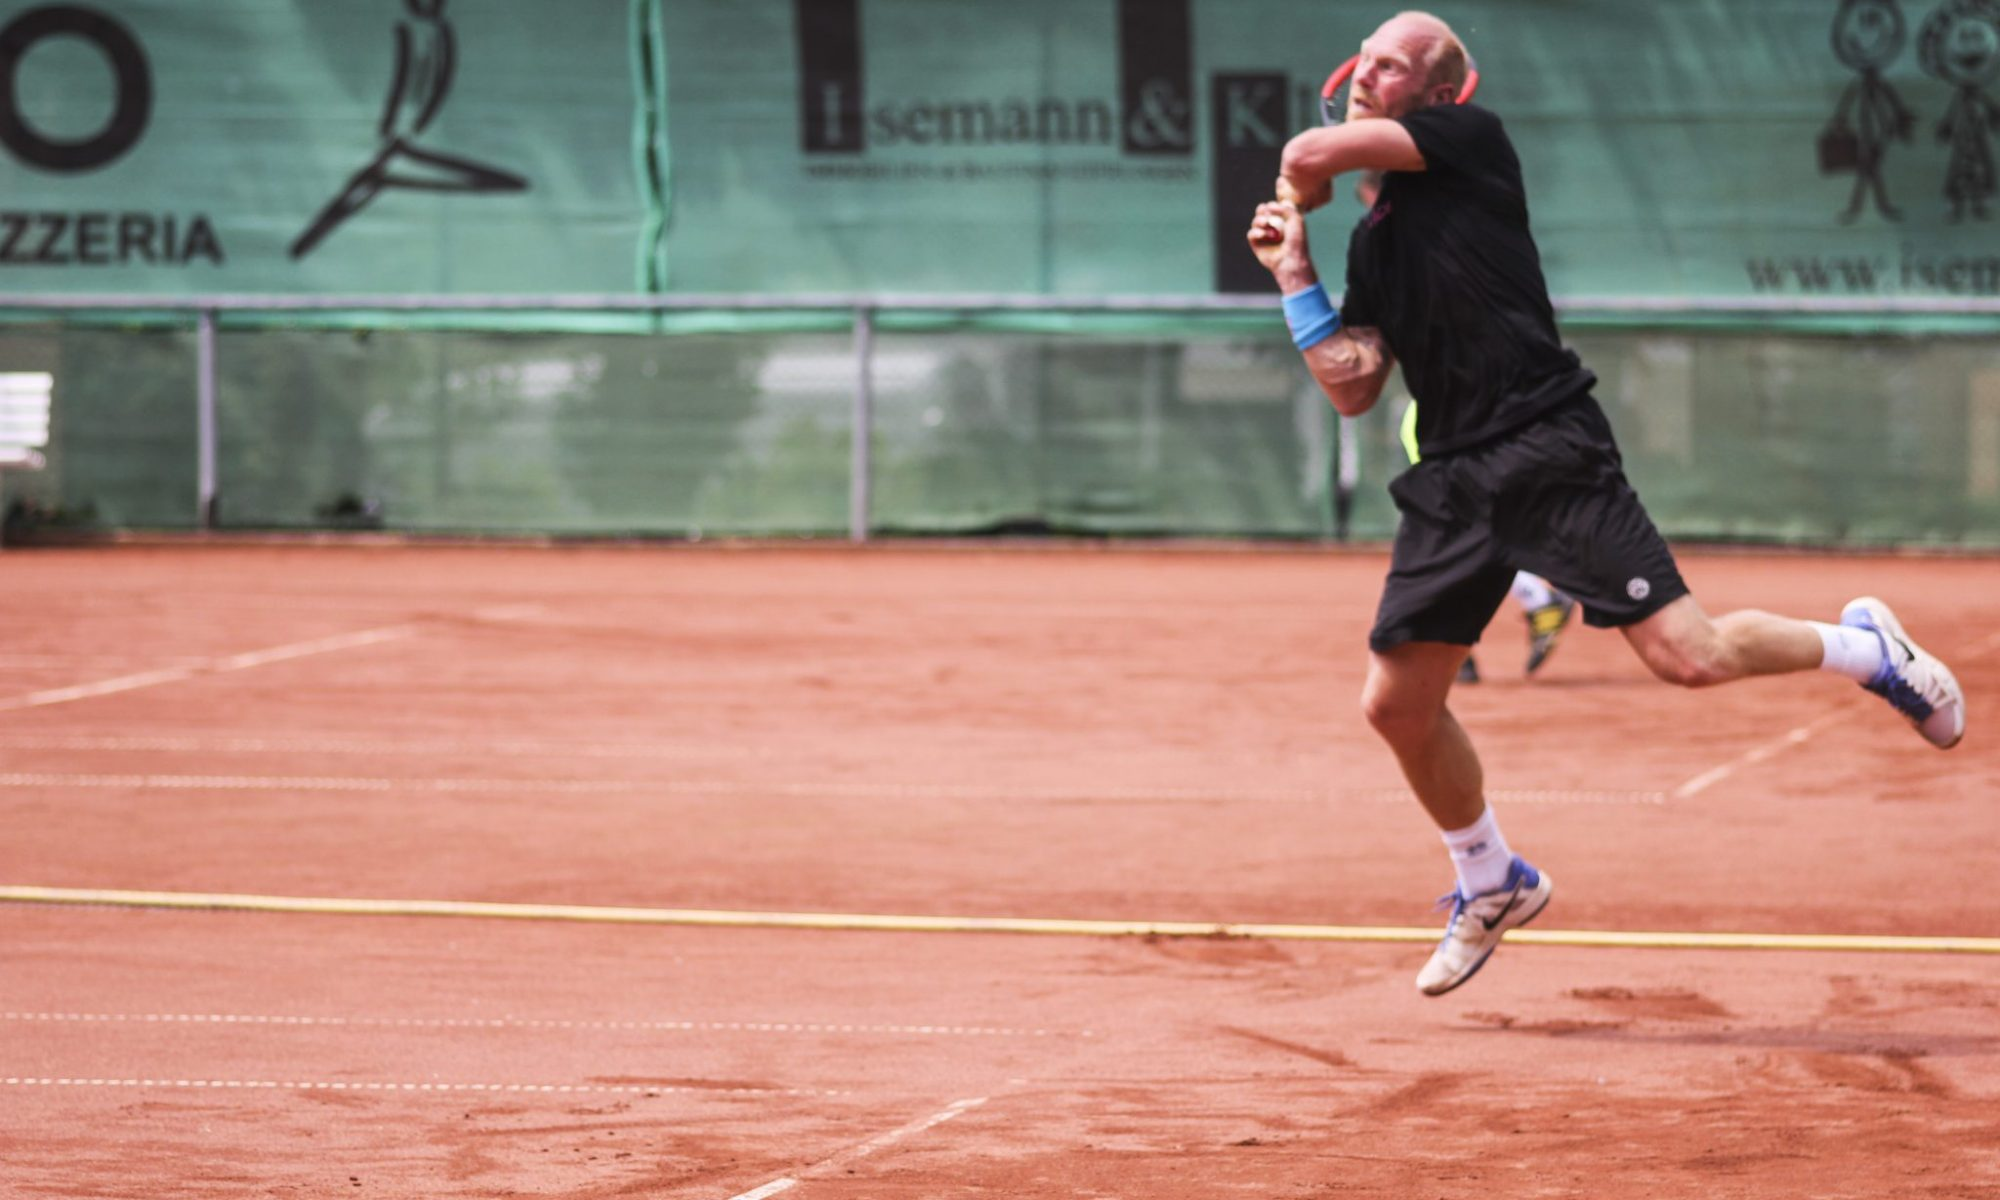 HTC | Hagener Tennis Club